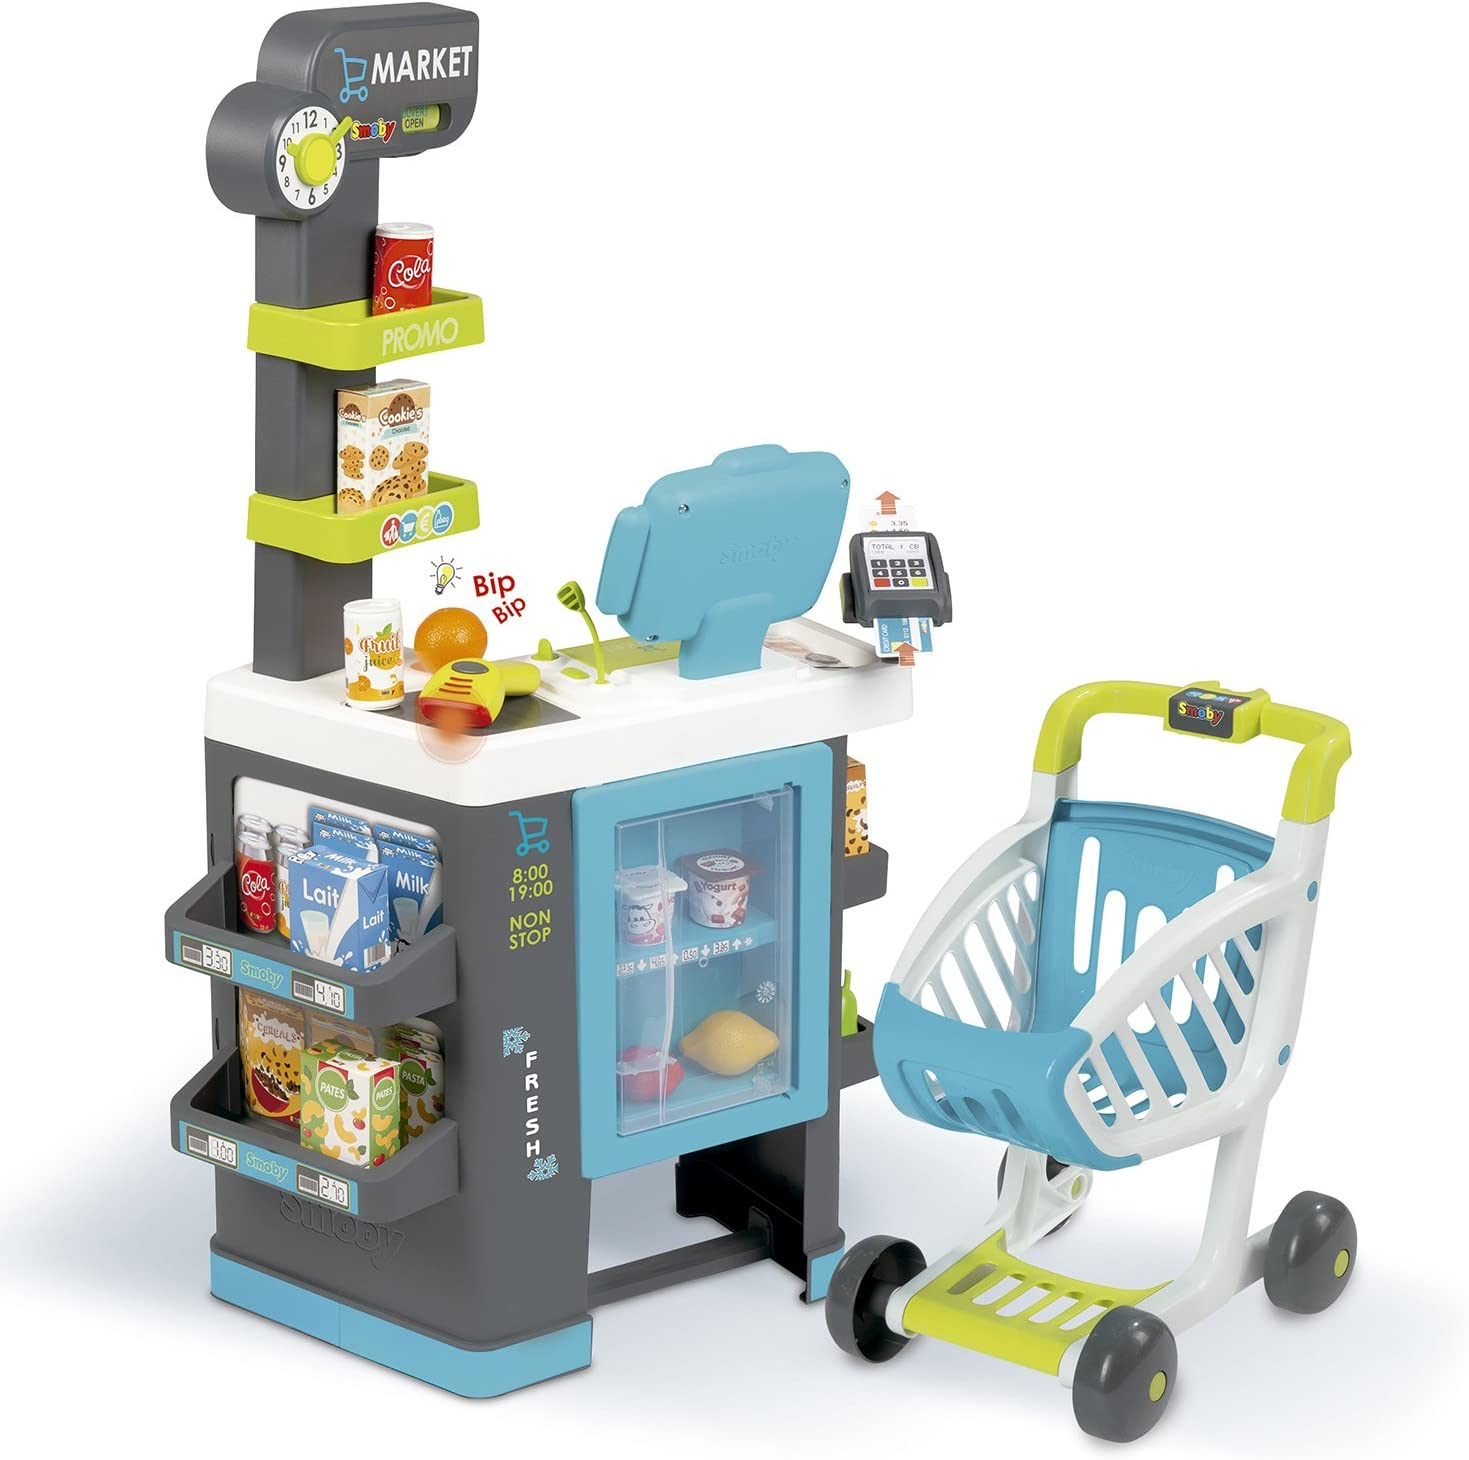 Supermercado urbano Fresh City Market (Smoby 350218): Amazon.es: Juguetes y juegos